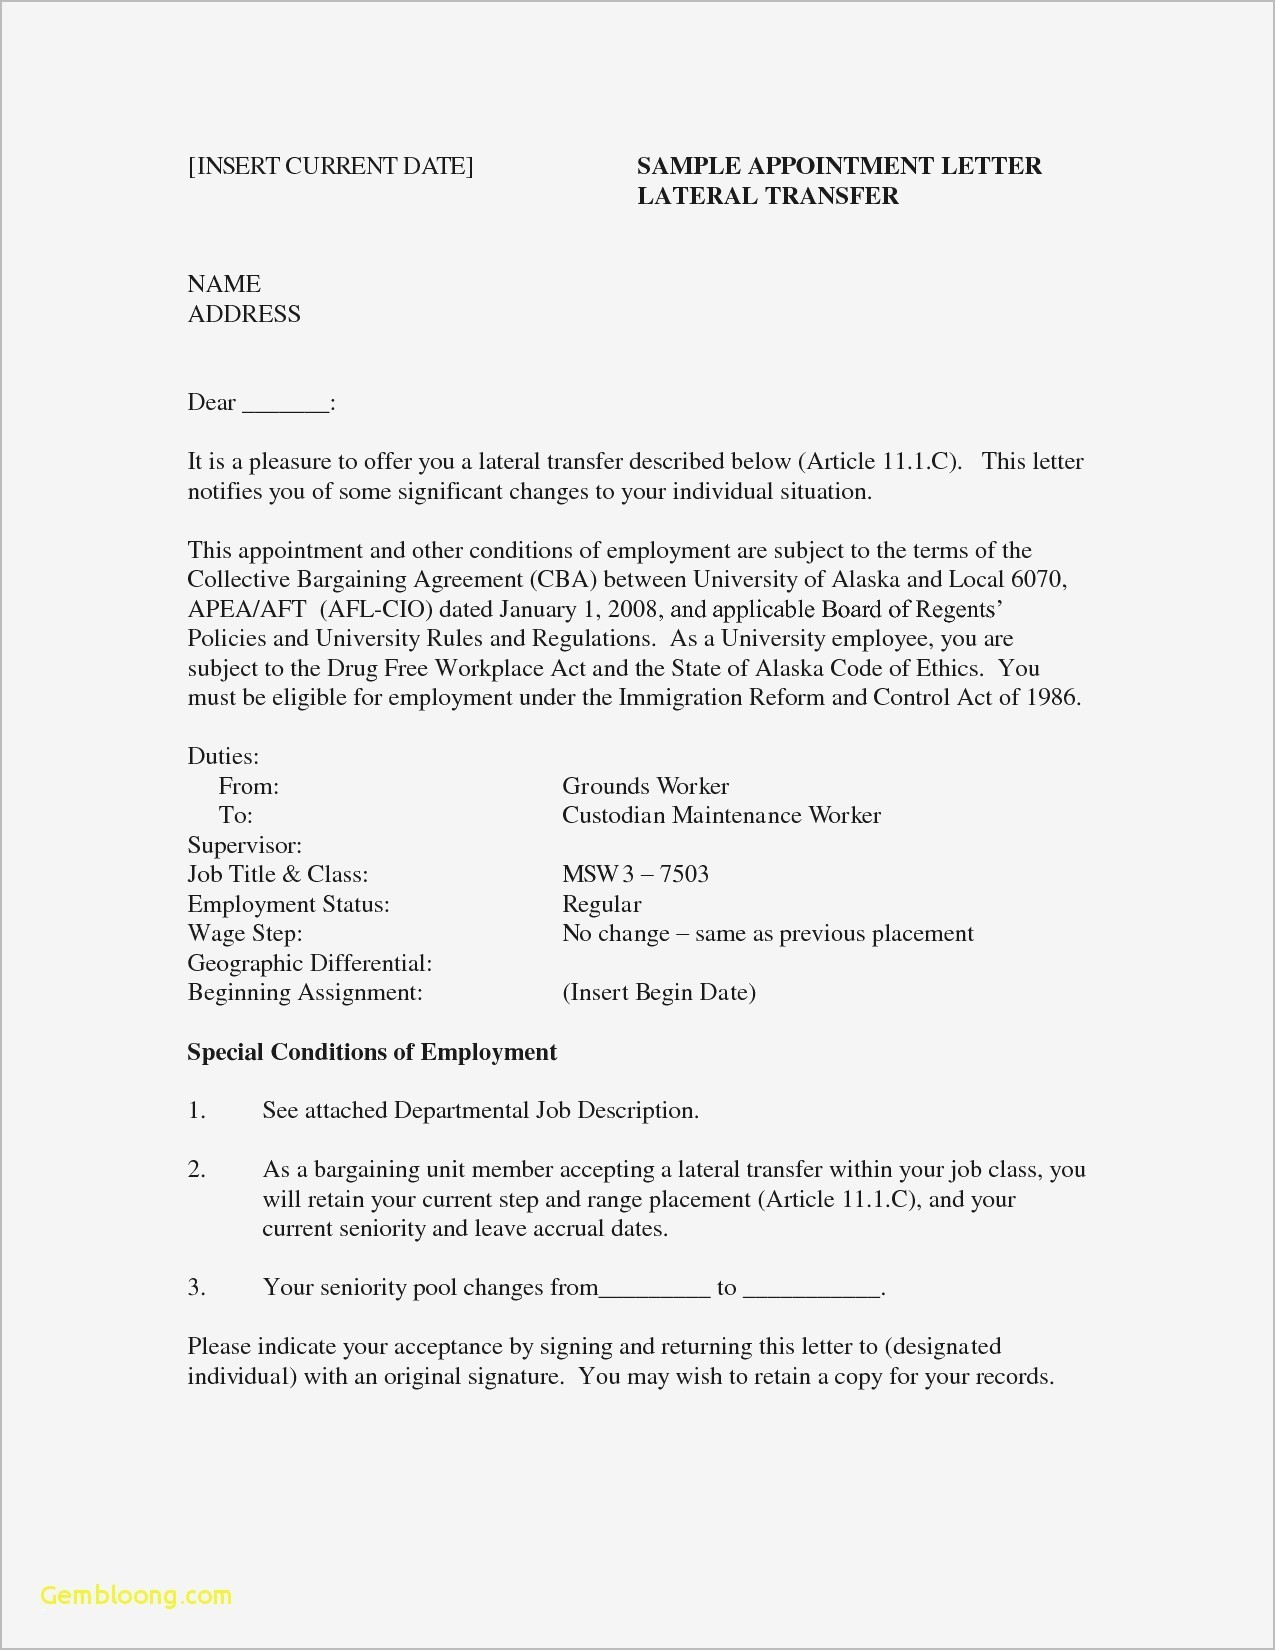 theatre resume template example-Theatre resume template inspirational best actor resume unique actor resumes 0d acting resume format 20-e